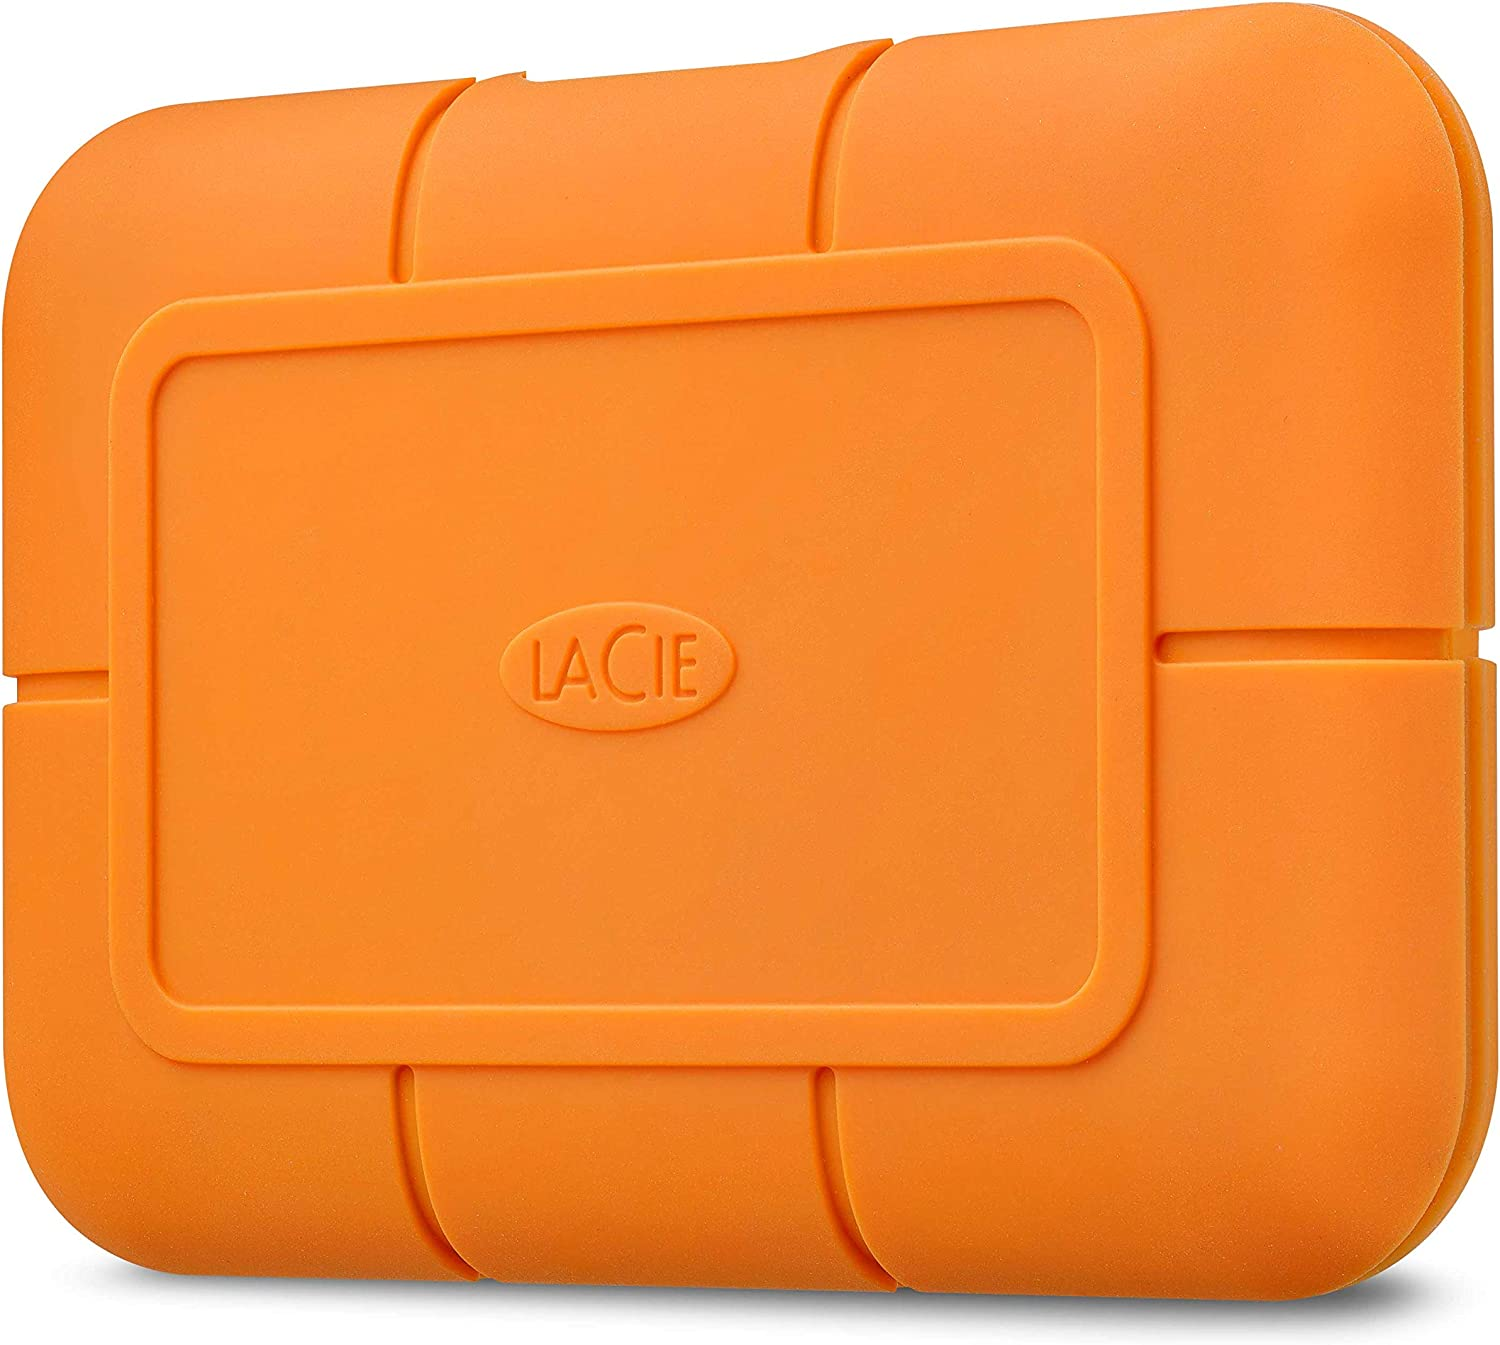 LaCie Rugged SSD 500GB Solid State Drive — USB-C USB 3.0, Drop Shock Dust Water Resistant, for Mac and PC Computer Desktop Laptop, 1 Mo Adobe CC (STHR500800)